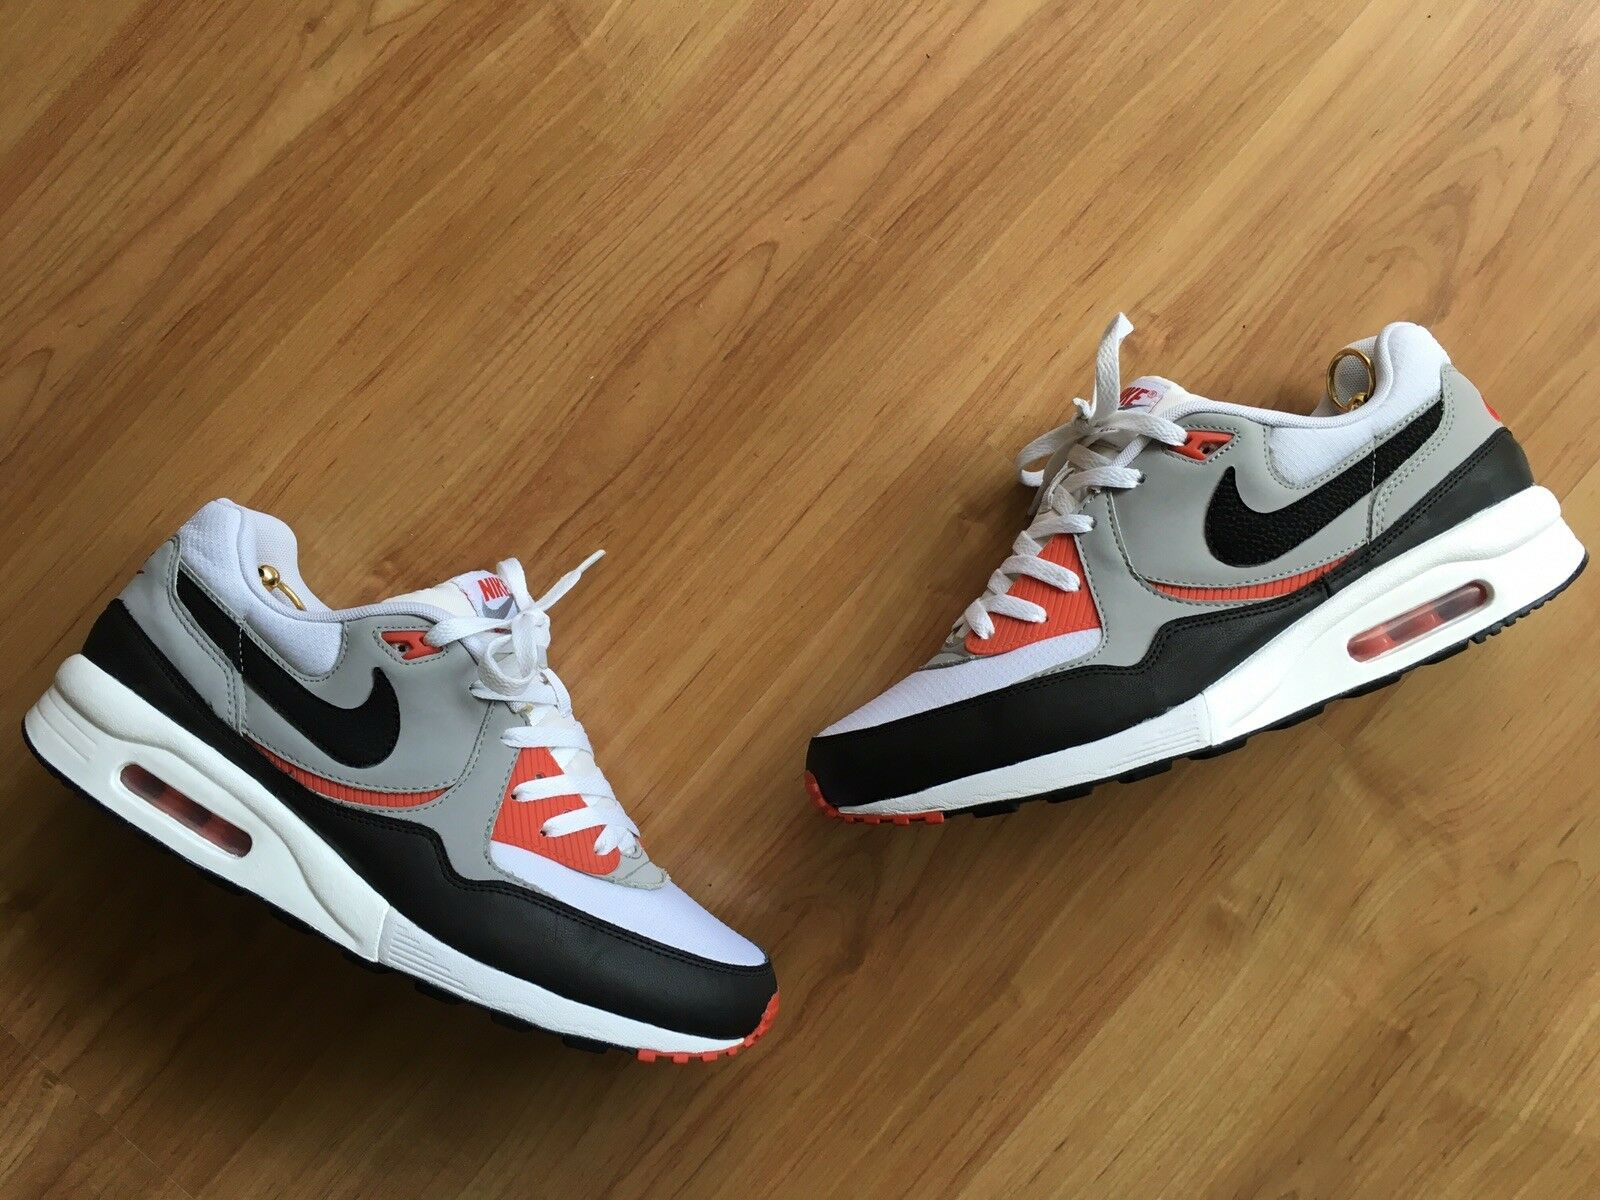 Nike Air Max 89 Light Bw 95 97 tn vapor Vnds